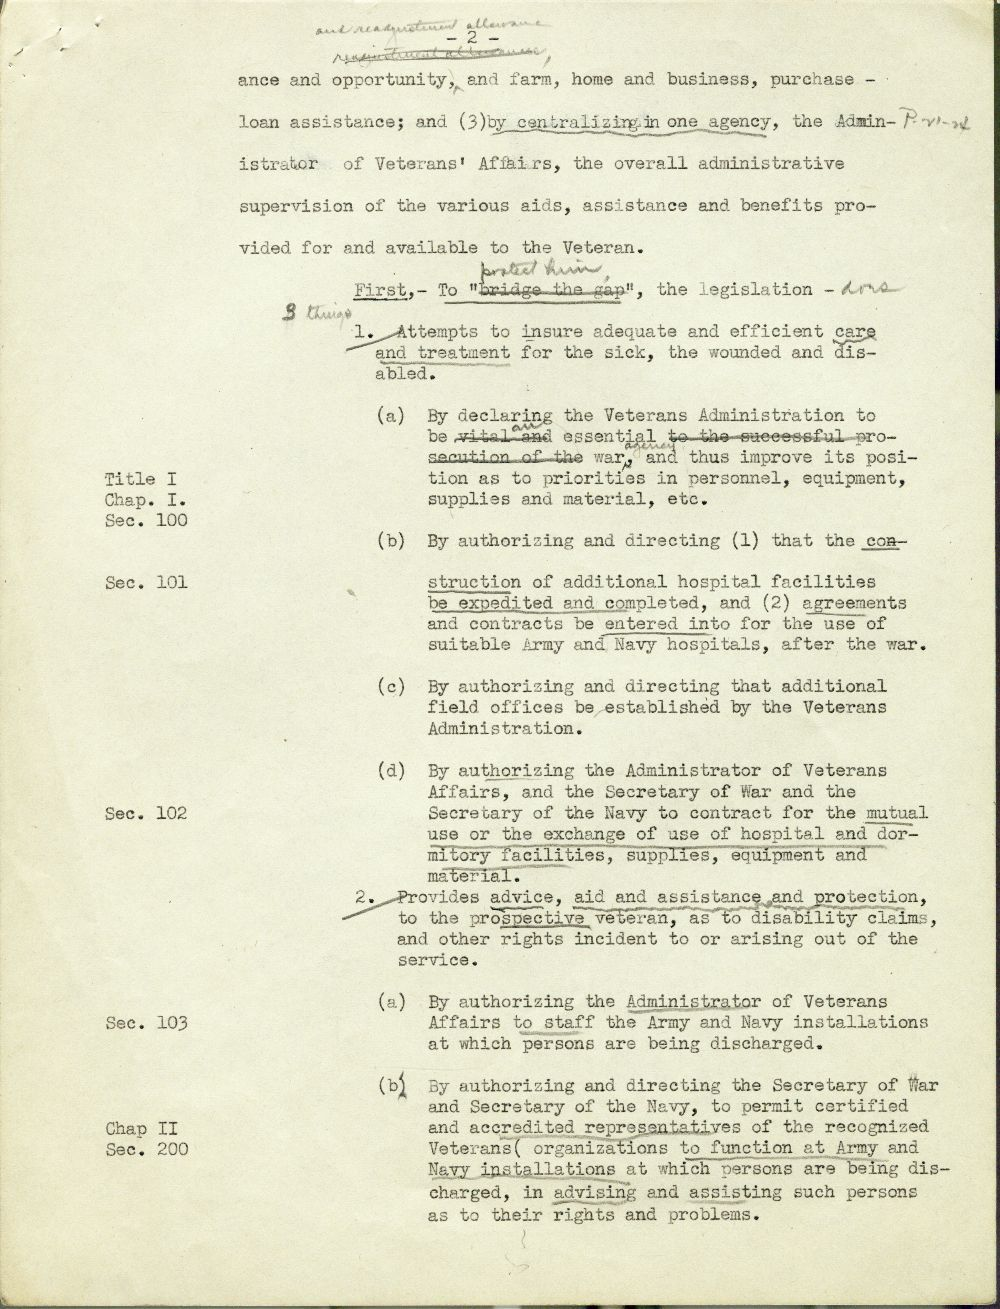 Testimony concerning the G. I. Bill of Rights presented by Harry W. Colmery - 2